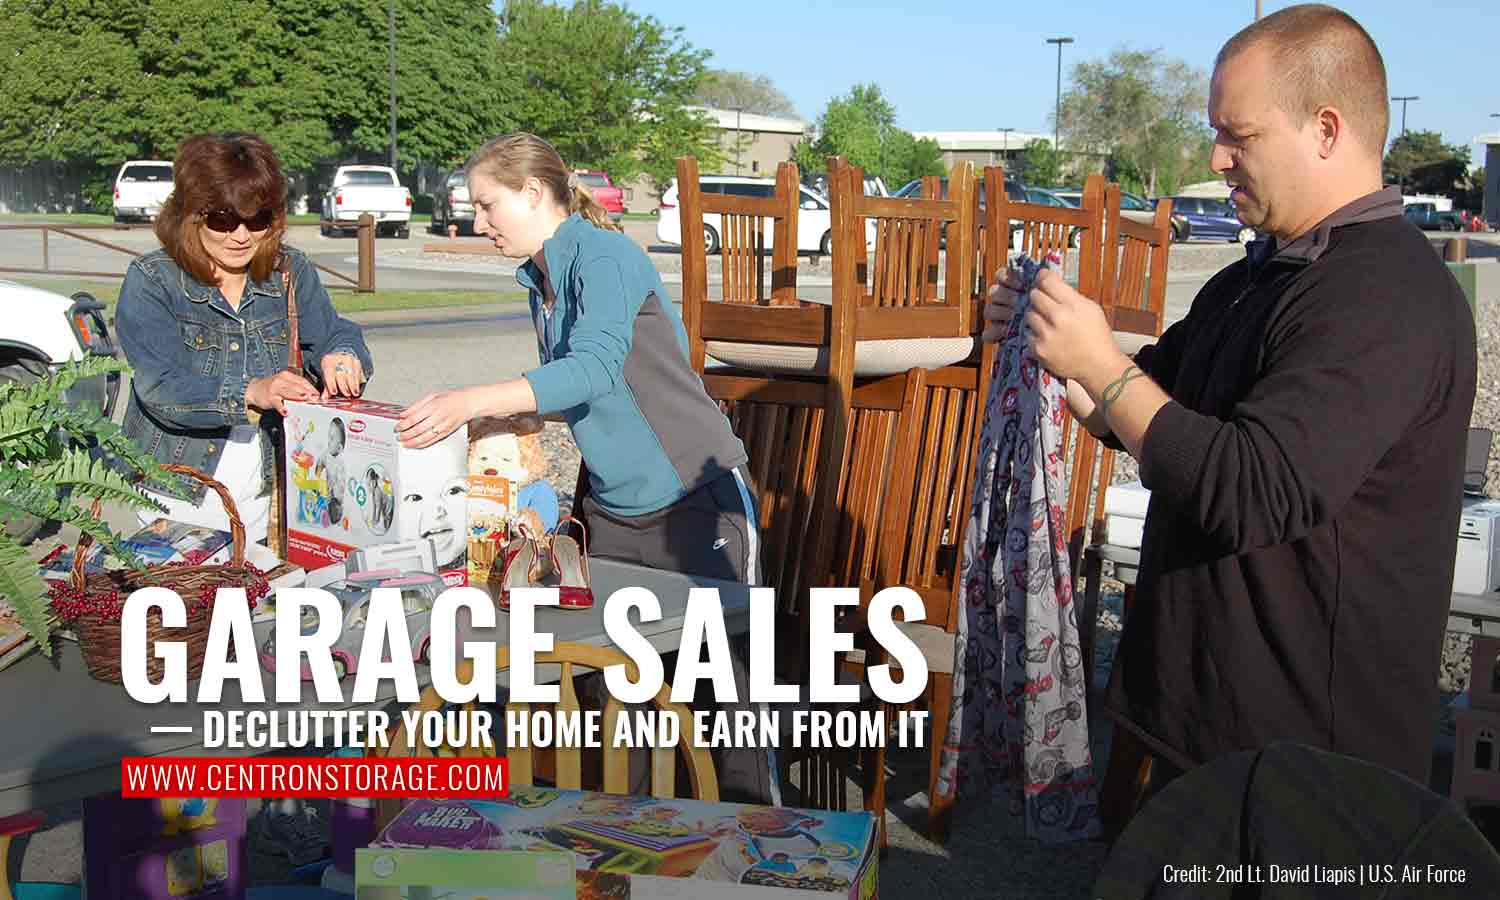 Garage sales — declutter your home and earn from it